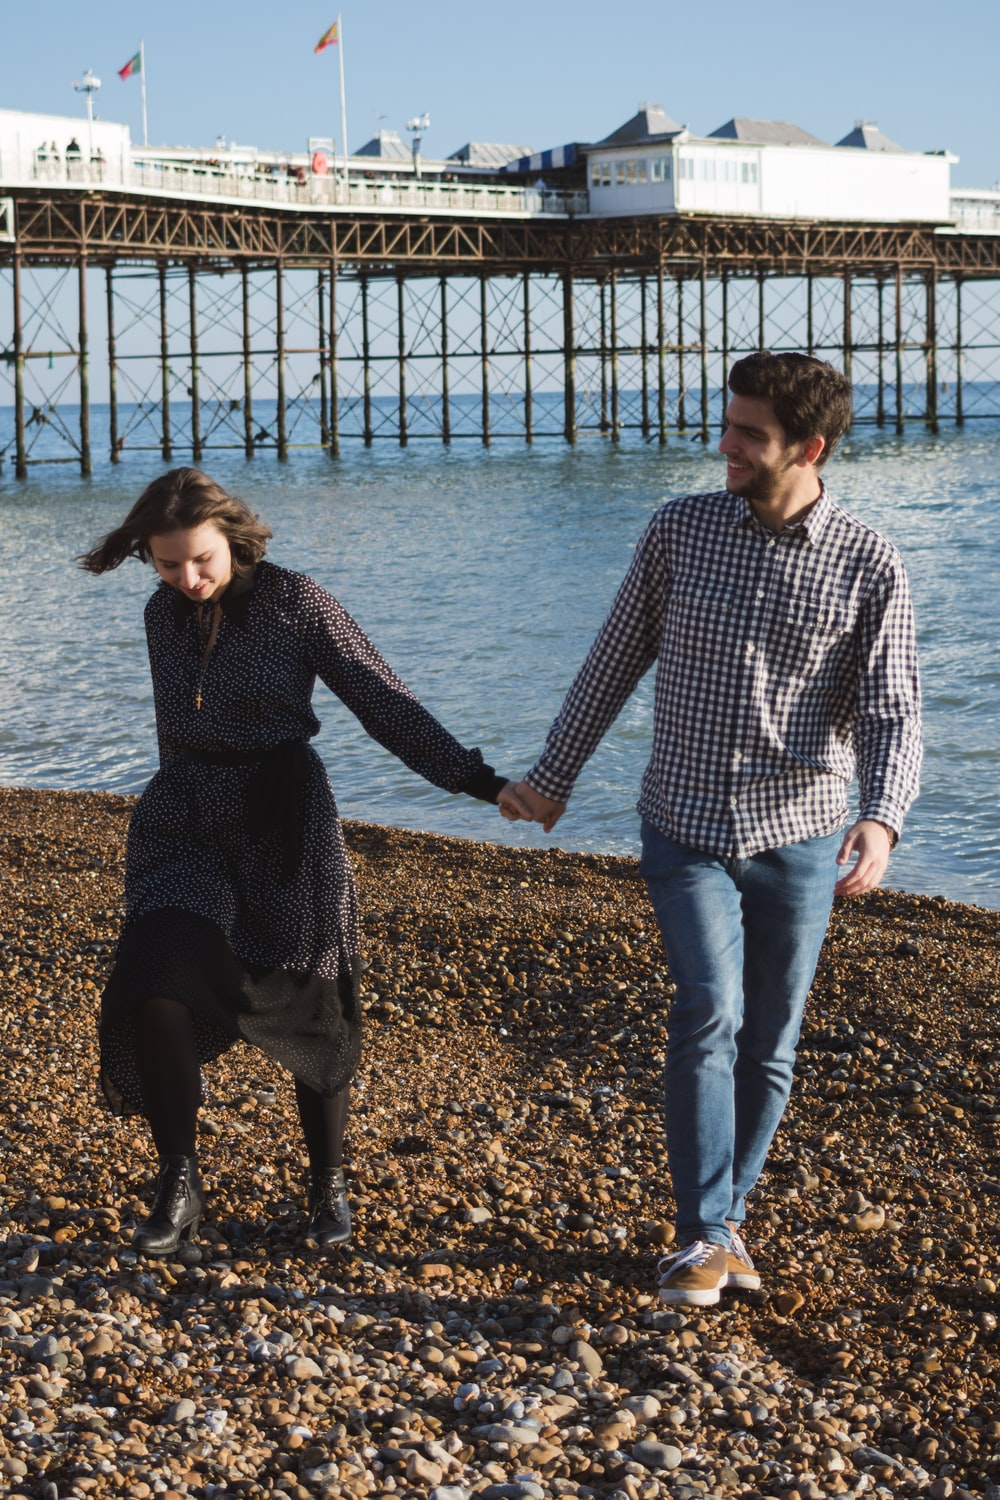 long paragraphs for her man and woman standing near beach line